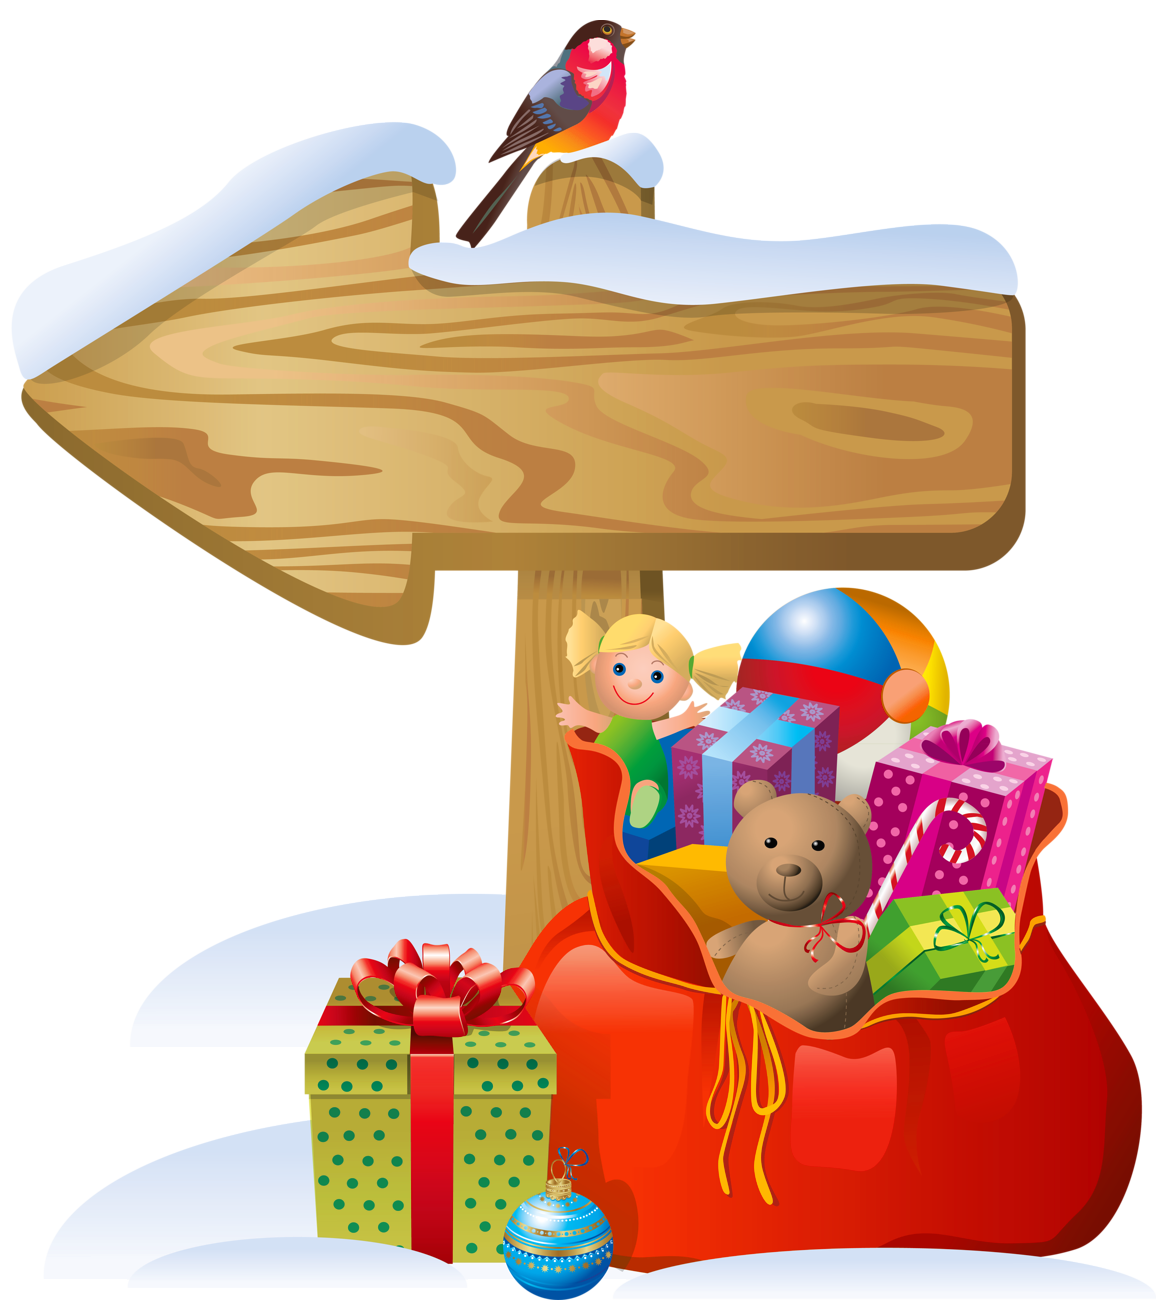 Christmas sign clipart image library download Transparent Christmas Sign and Santa Bag PNG Clipart | Gallery ... image library download